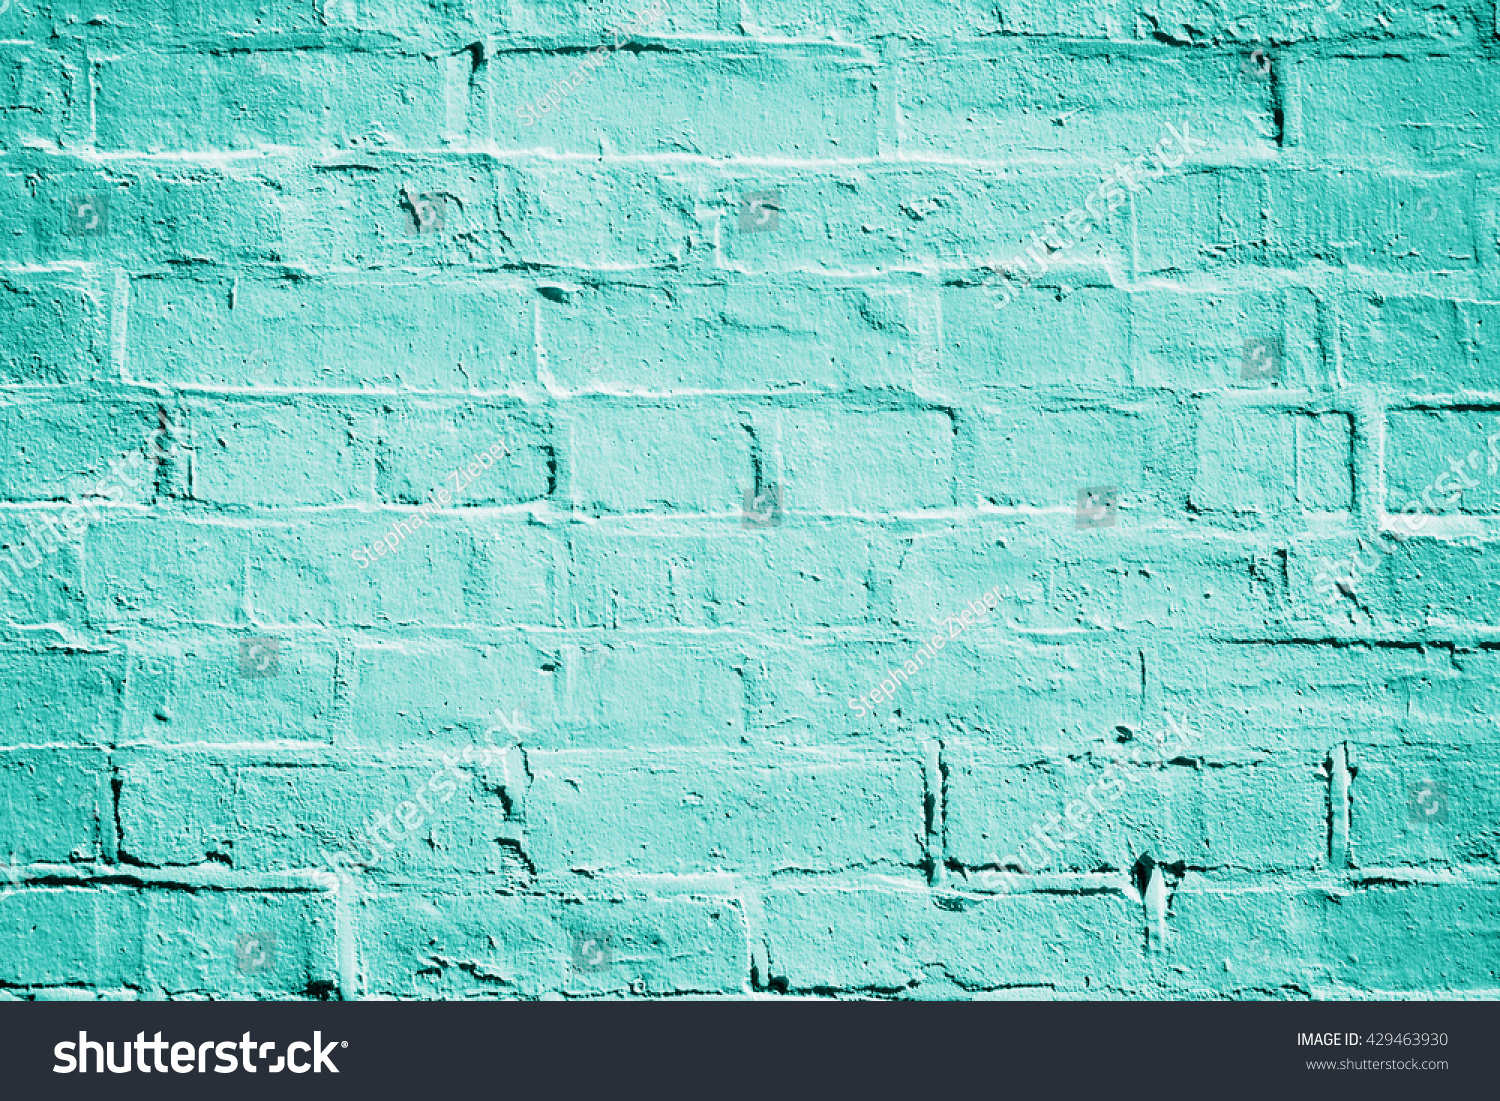 Turquoise Brick Wallpaper Teal Turquoise Aqua Mint Green Brick Stock Photo 429463930